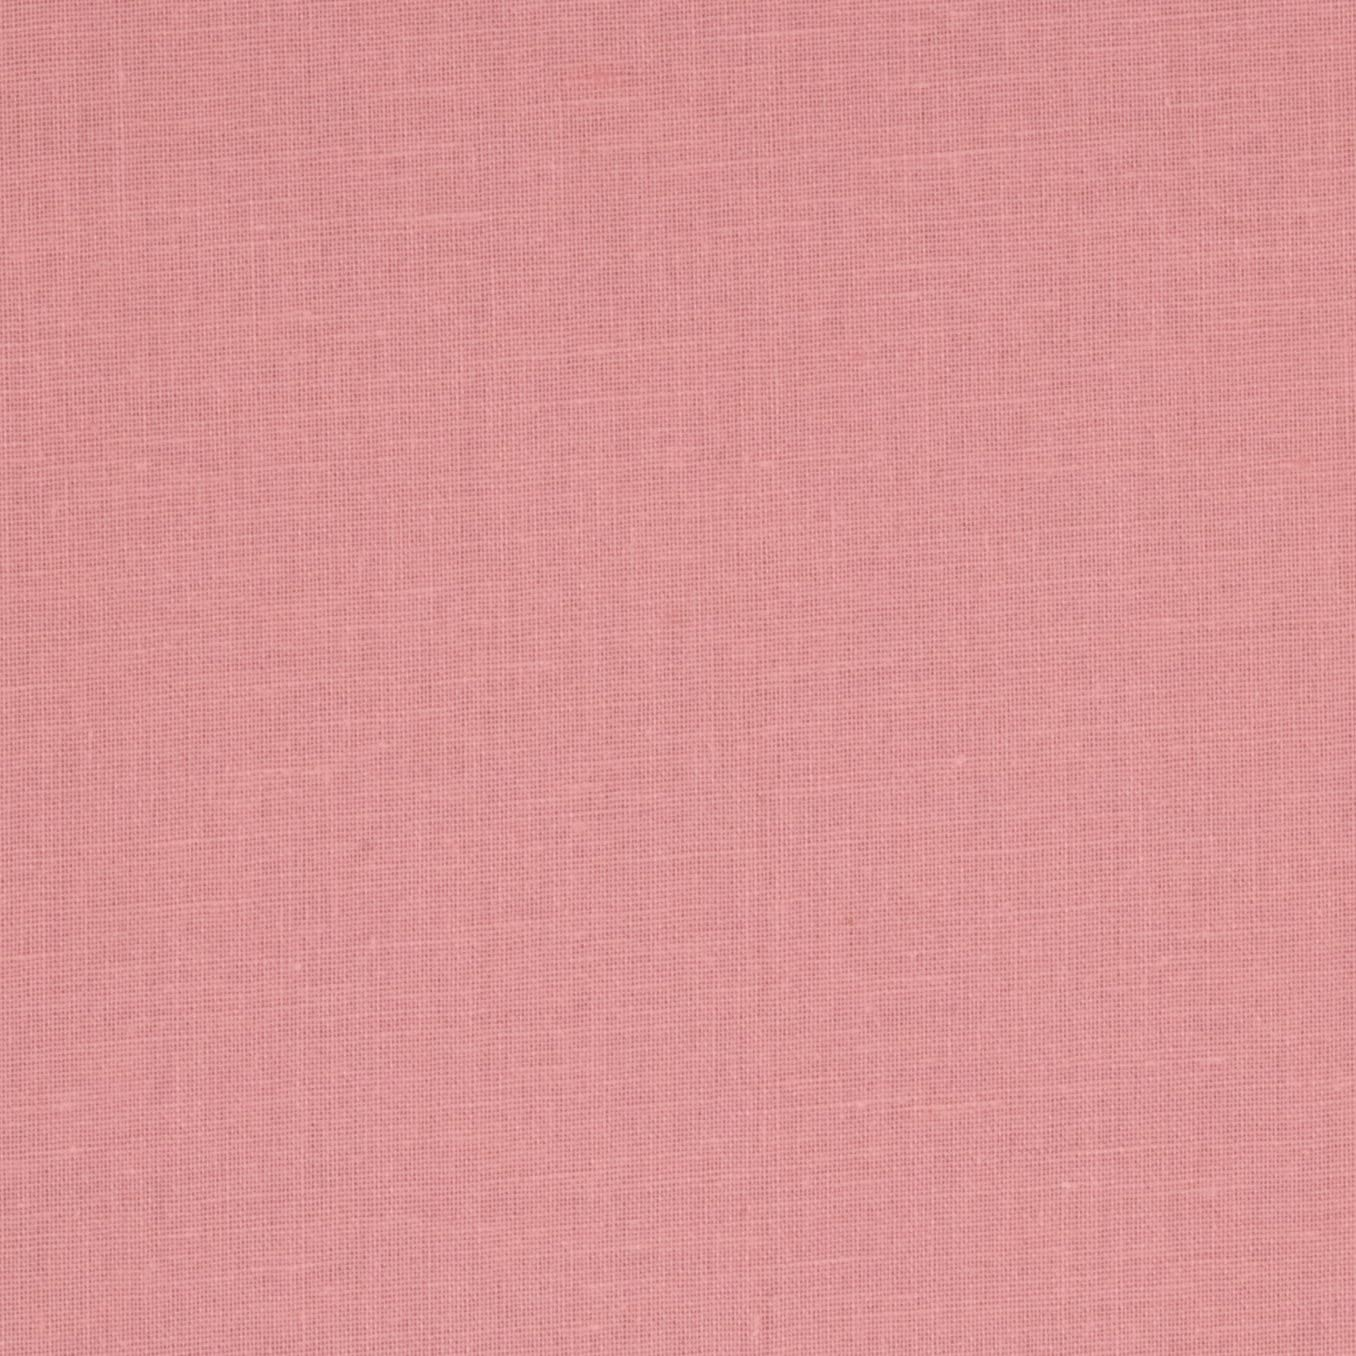 Richlin Textiles Cotton Broadcloth Quilt Fabric By The Yard, Cadet